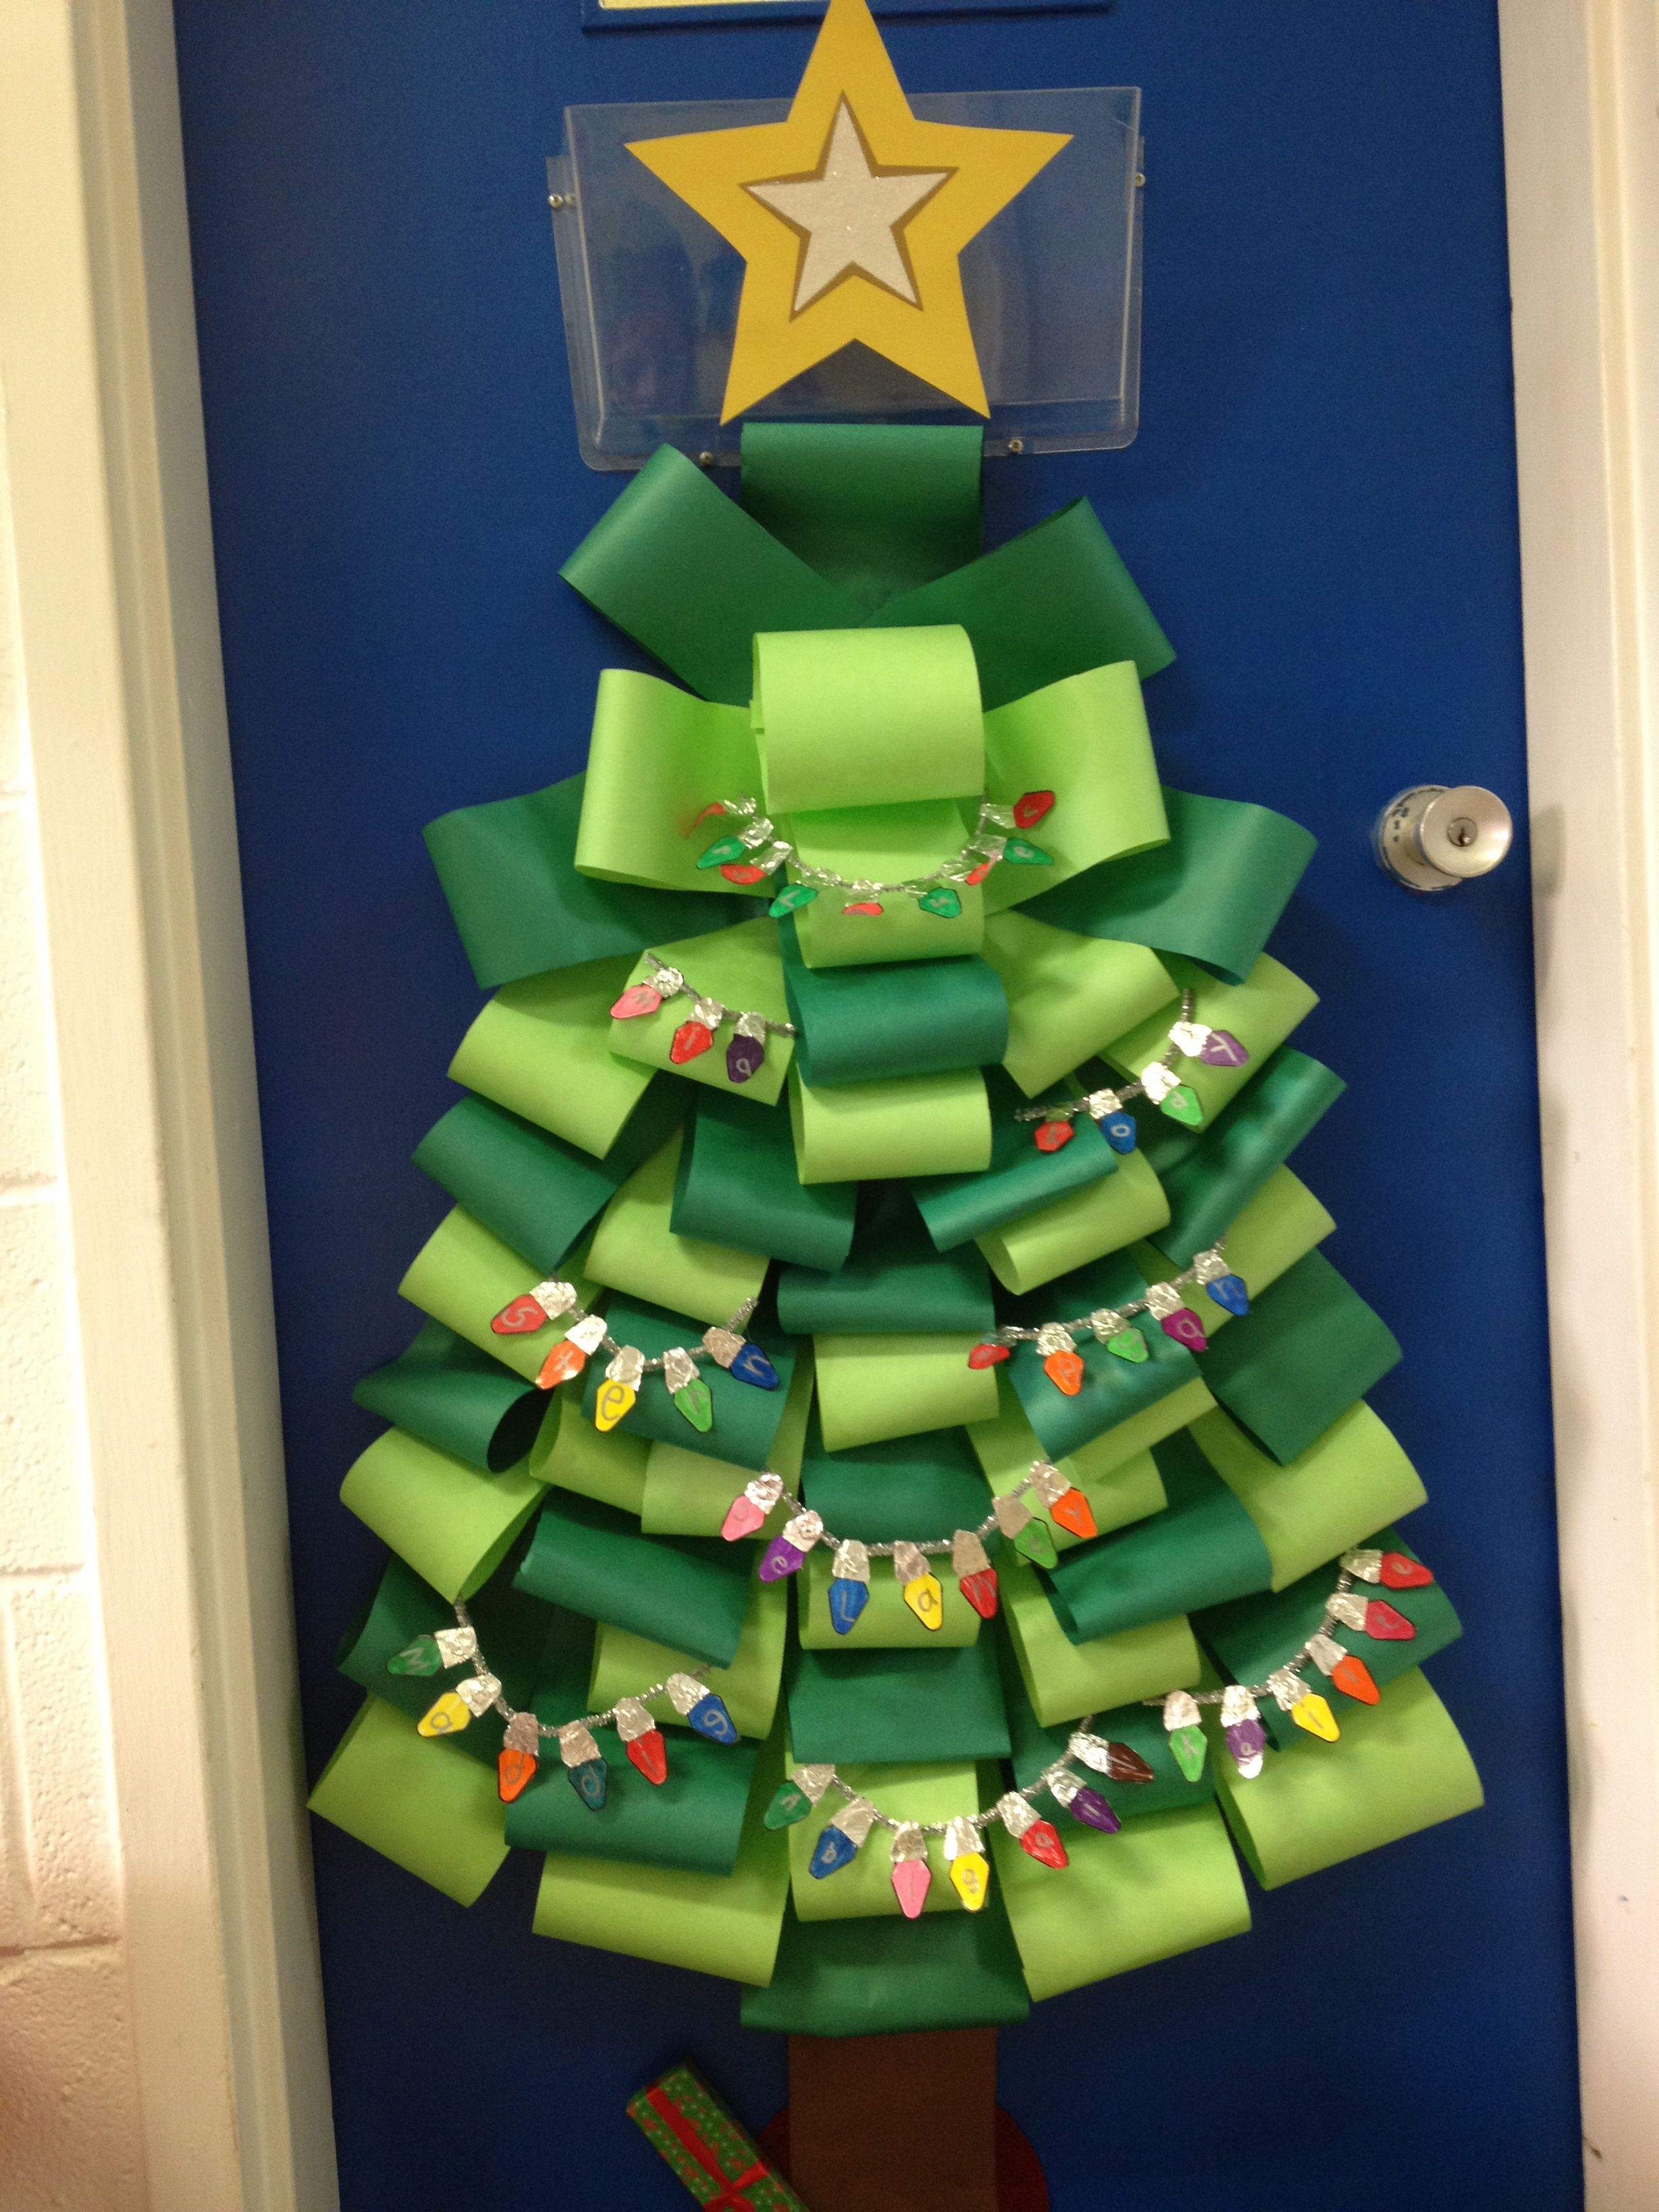 Christmas Classroom Door Rolled Paper And Then Spelled Out The Student Names In Lights